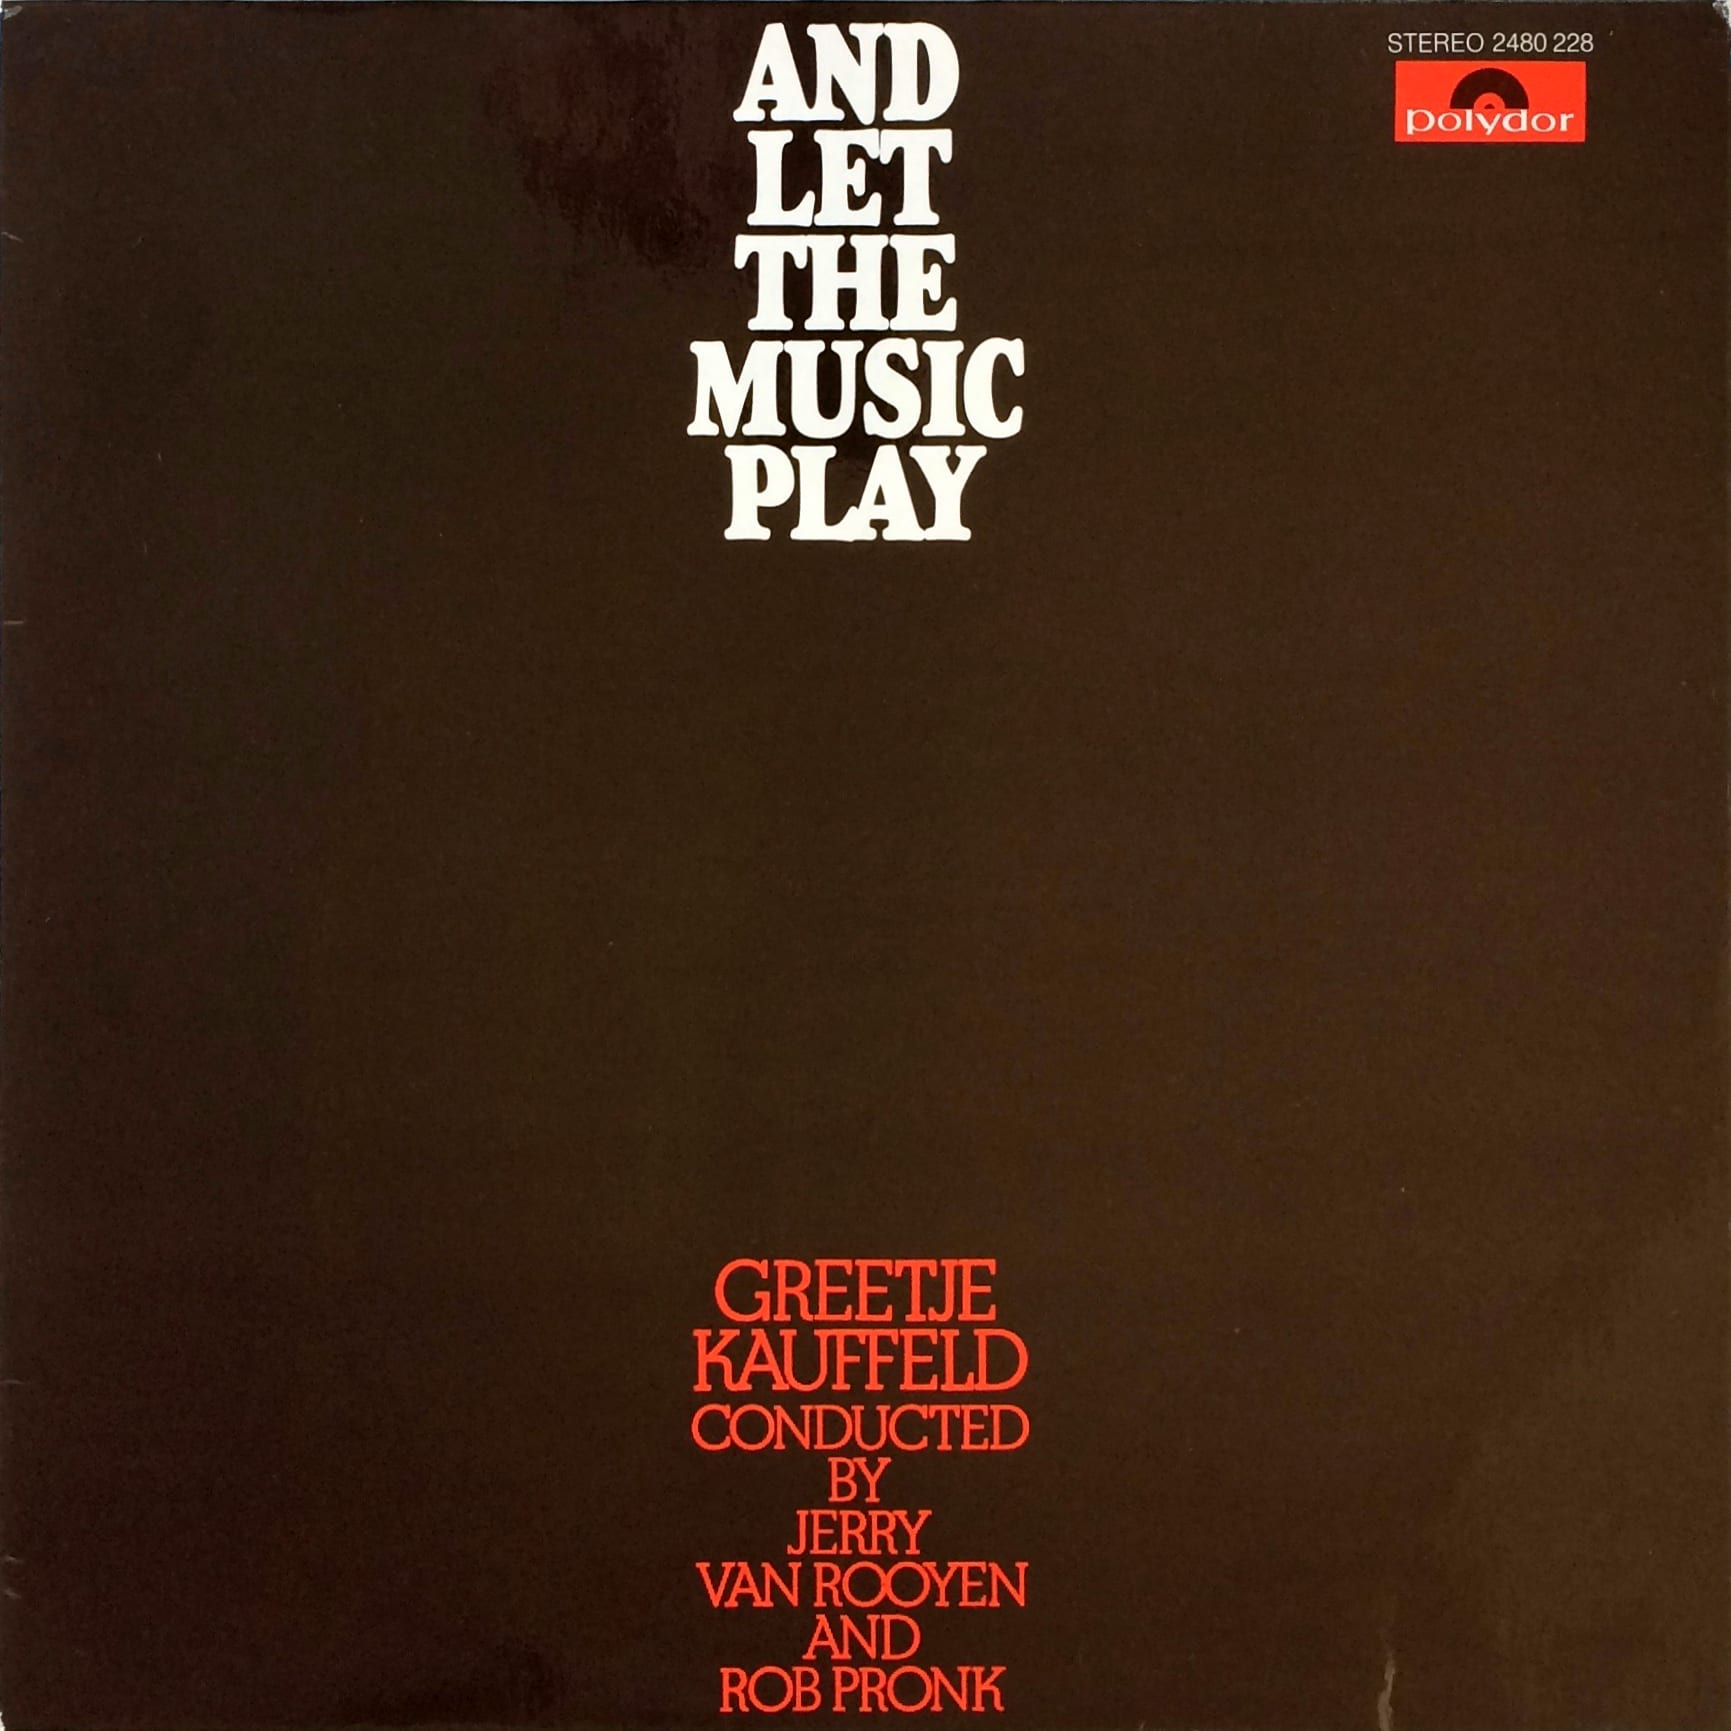 Greetje Kauffeld – And Let The Music Play